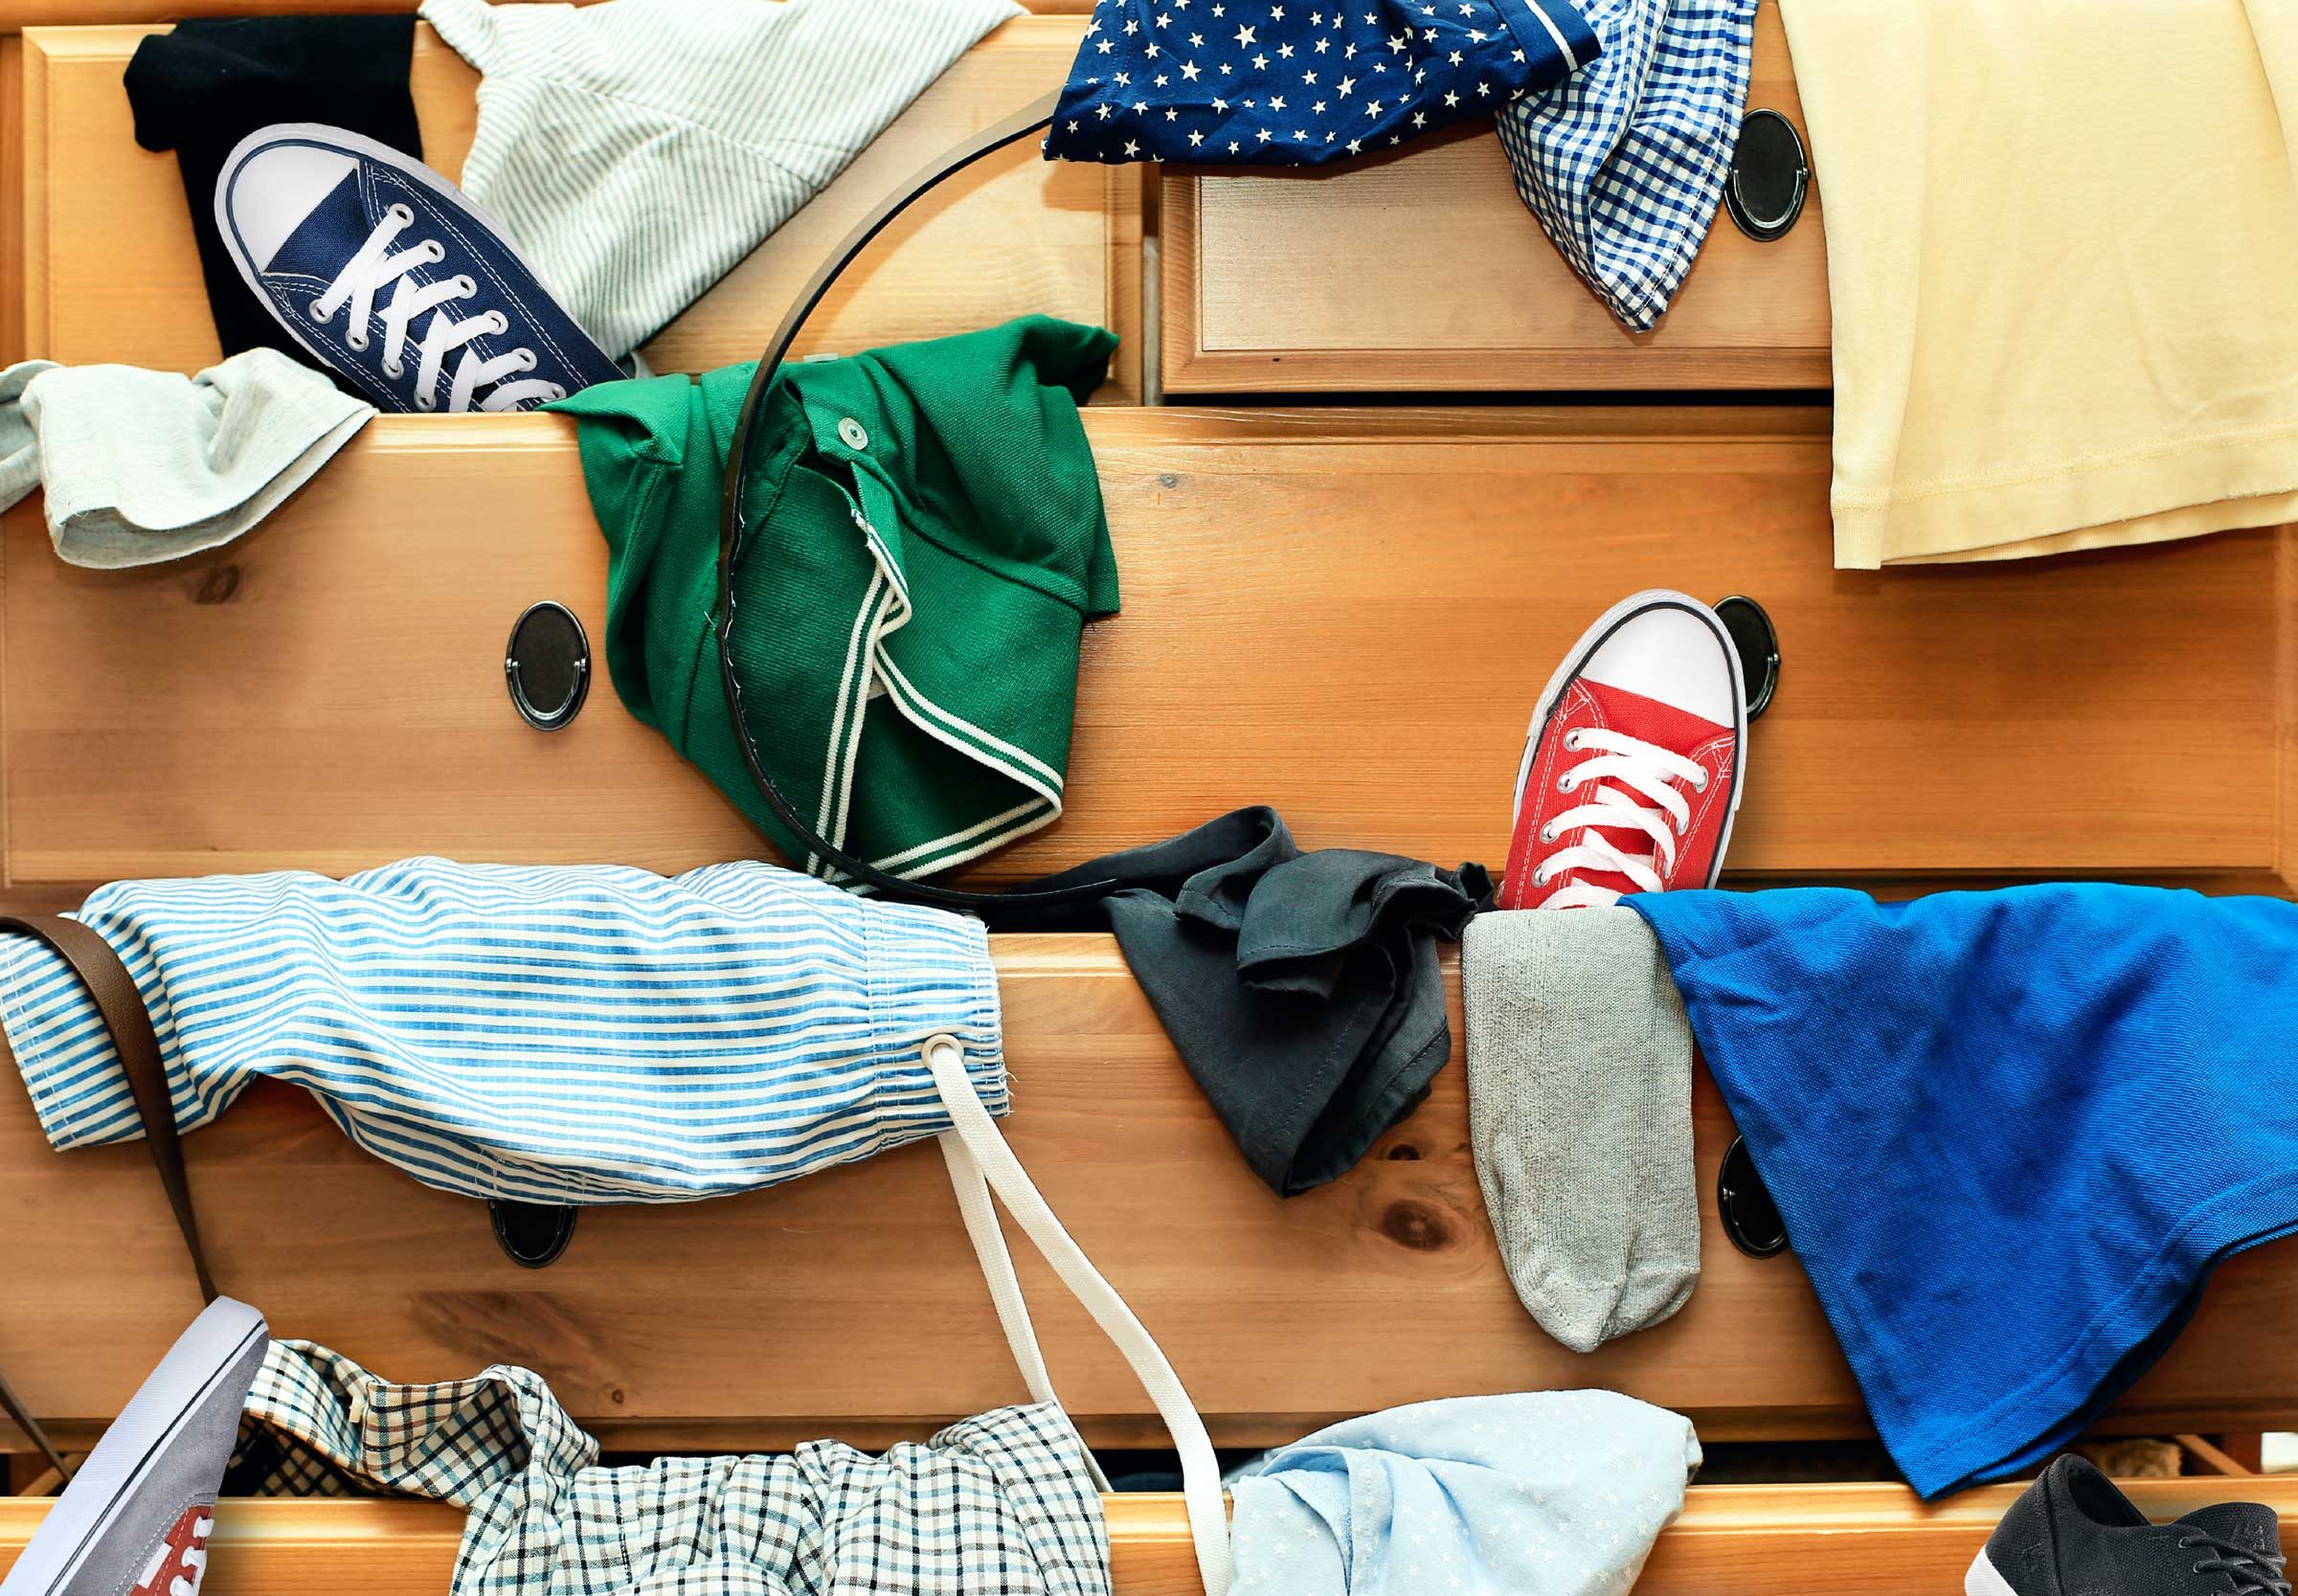 13 things house messy closet